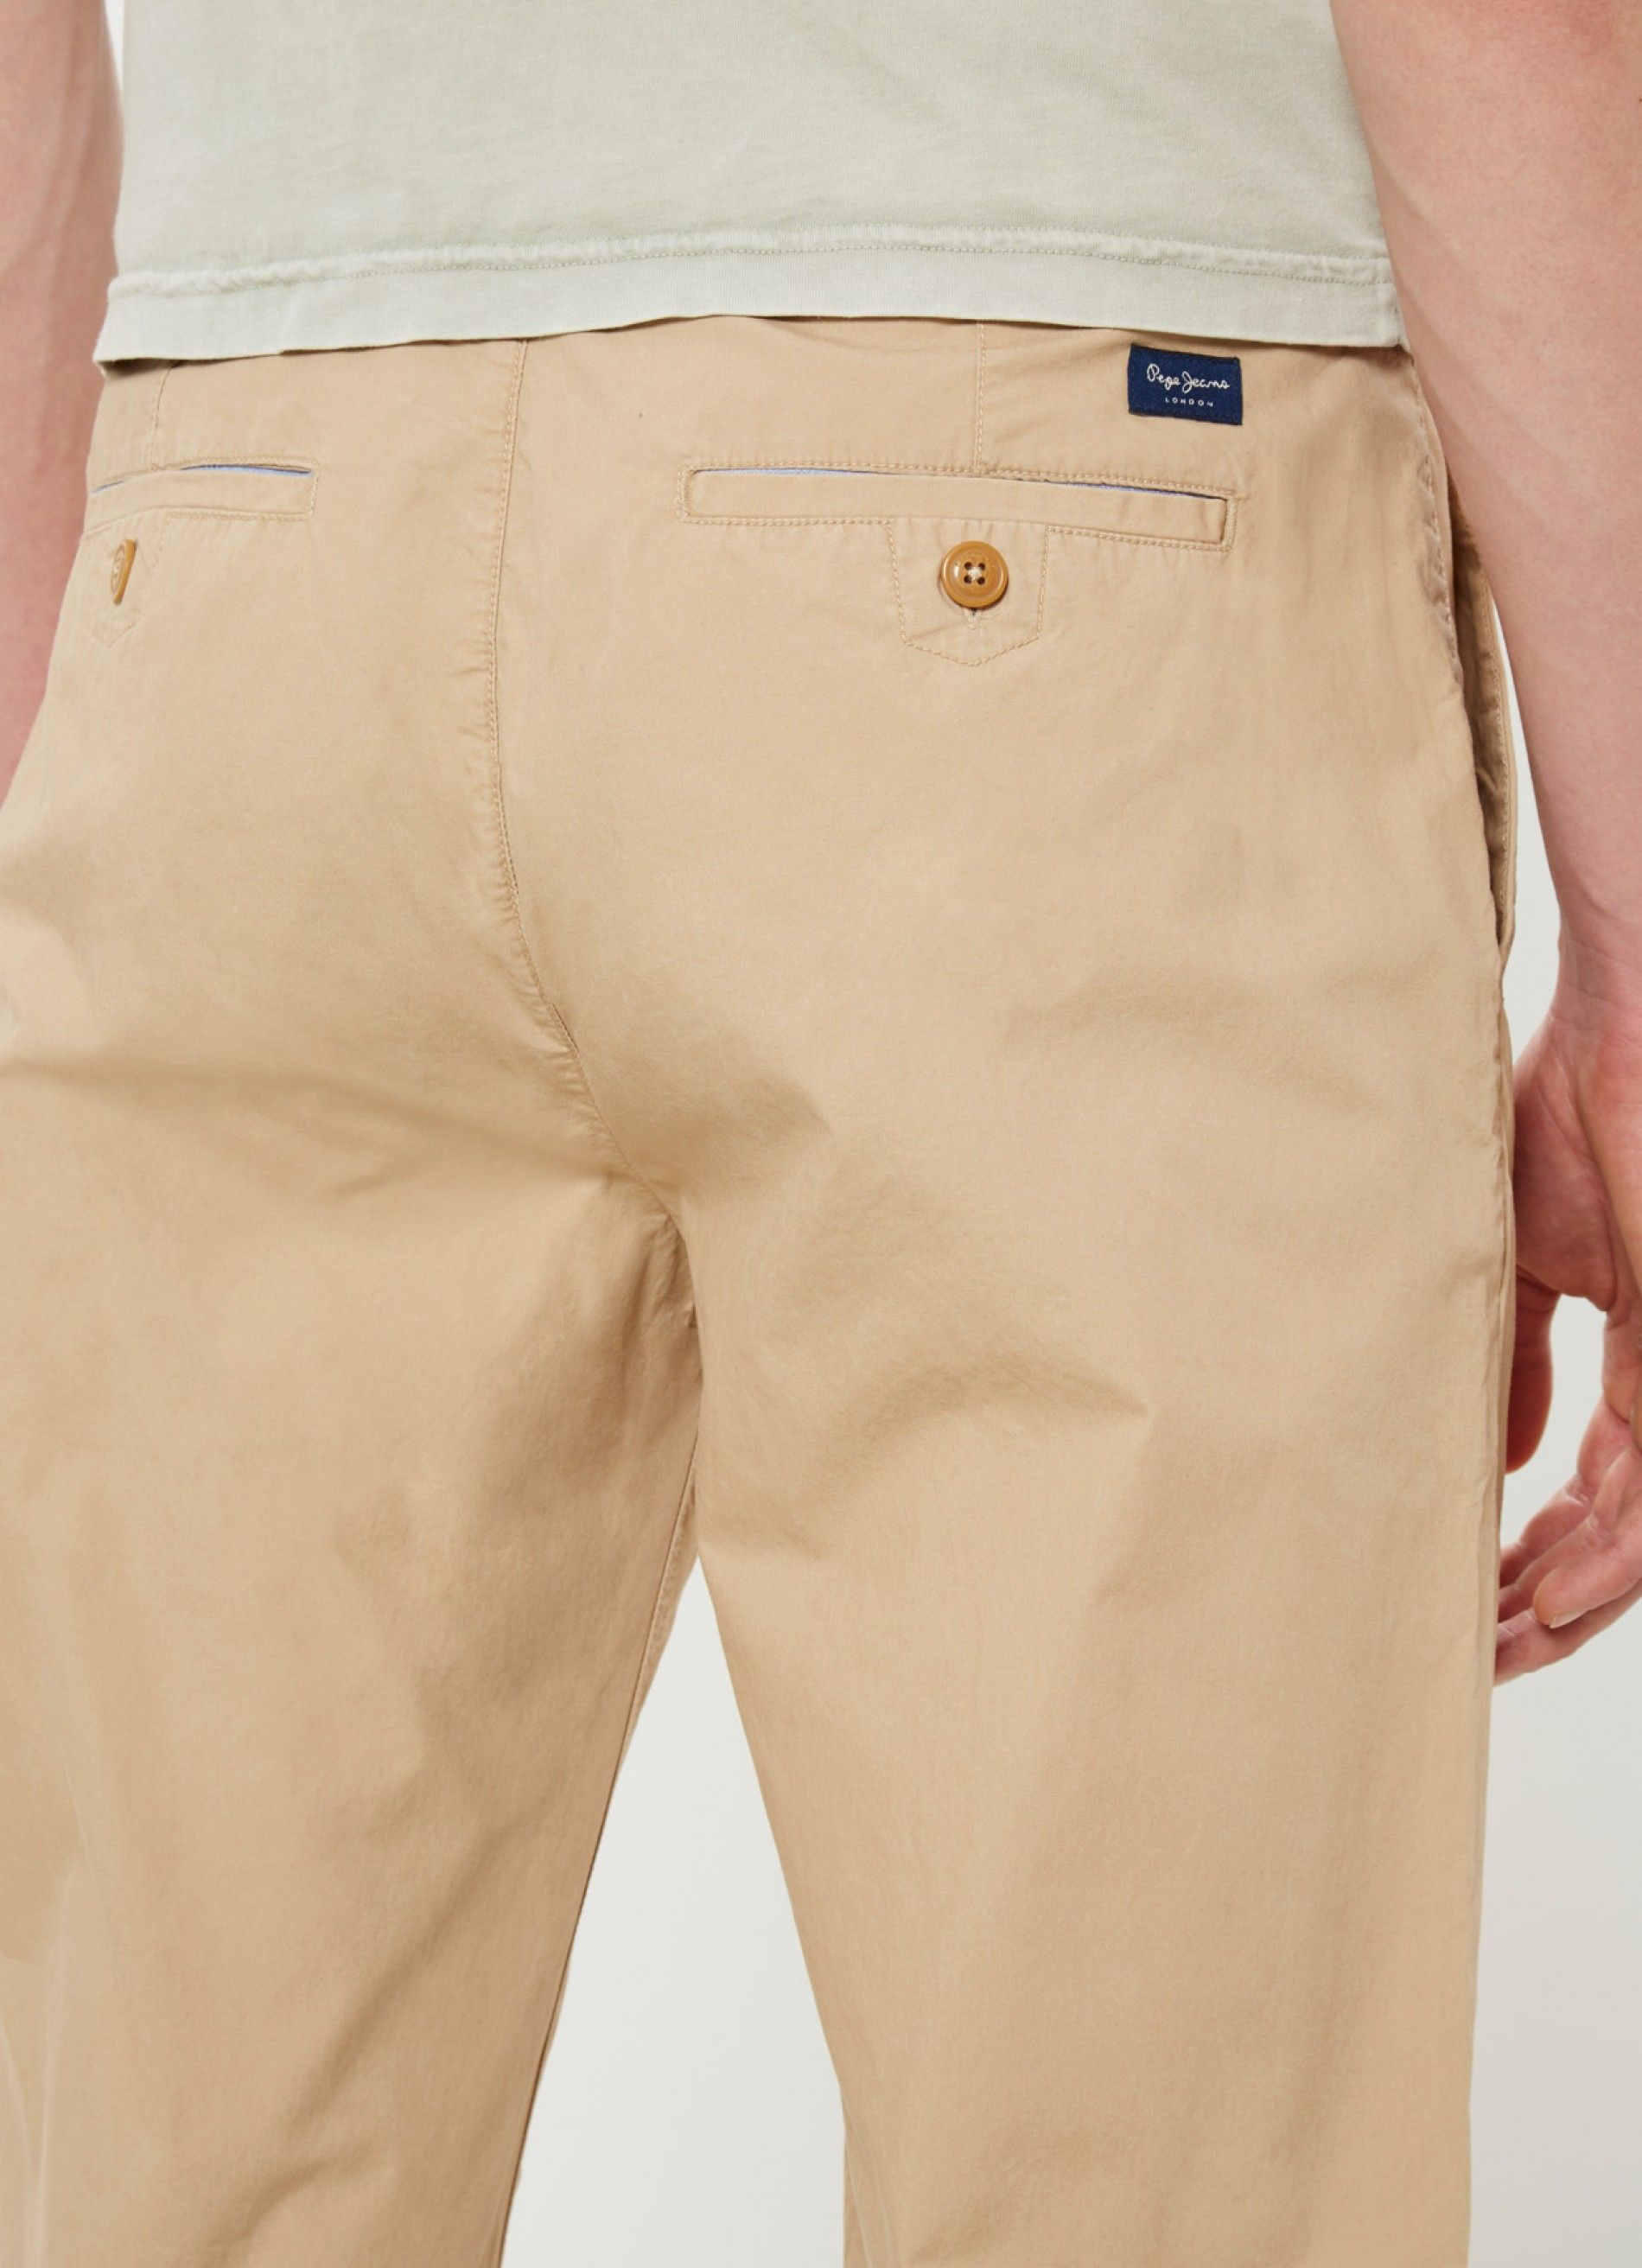 Regular fit trousers with bias cut pockets and coin pocket. Back ticket pockets with button. Waistband with trim.